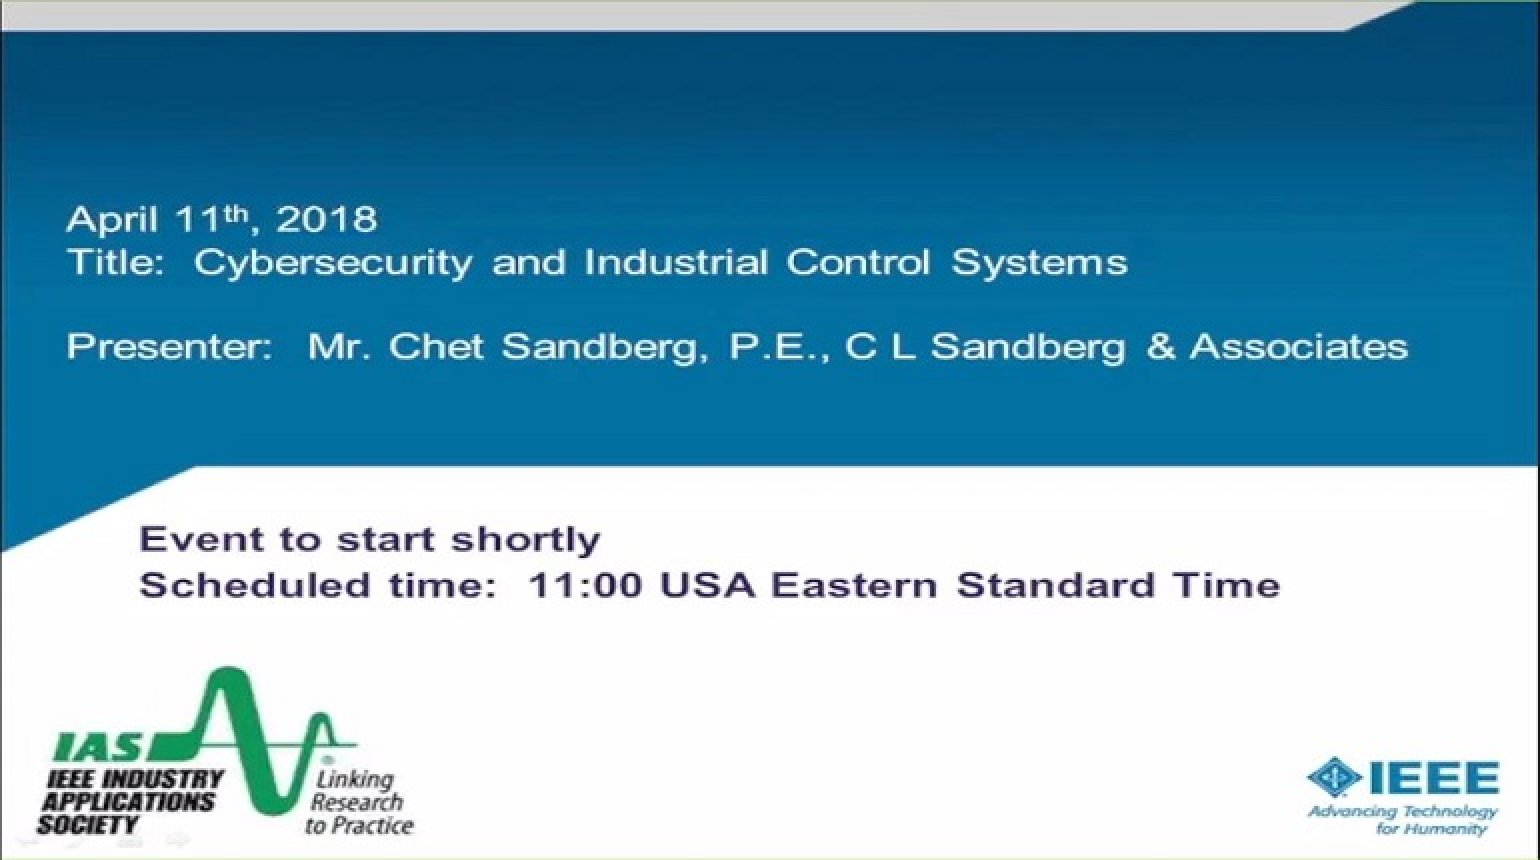 IAS Webinar Series - Cybersecurity and Industrial Control Systems